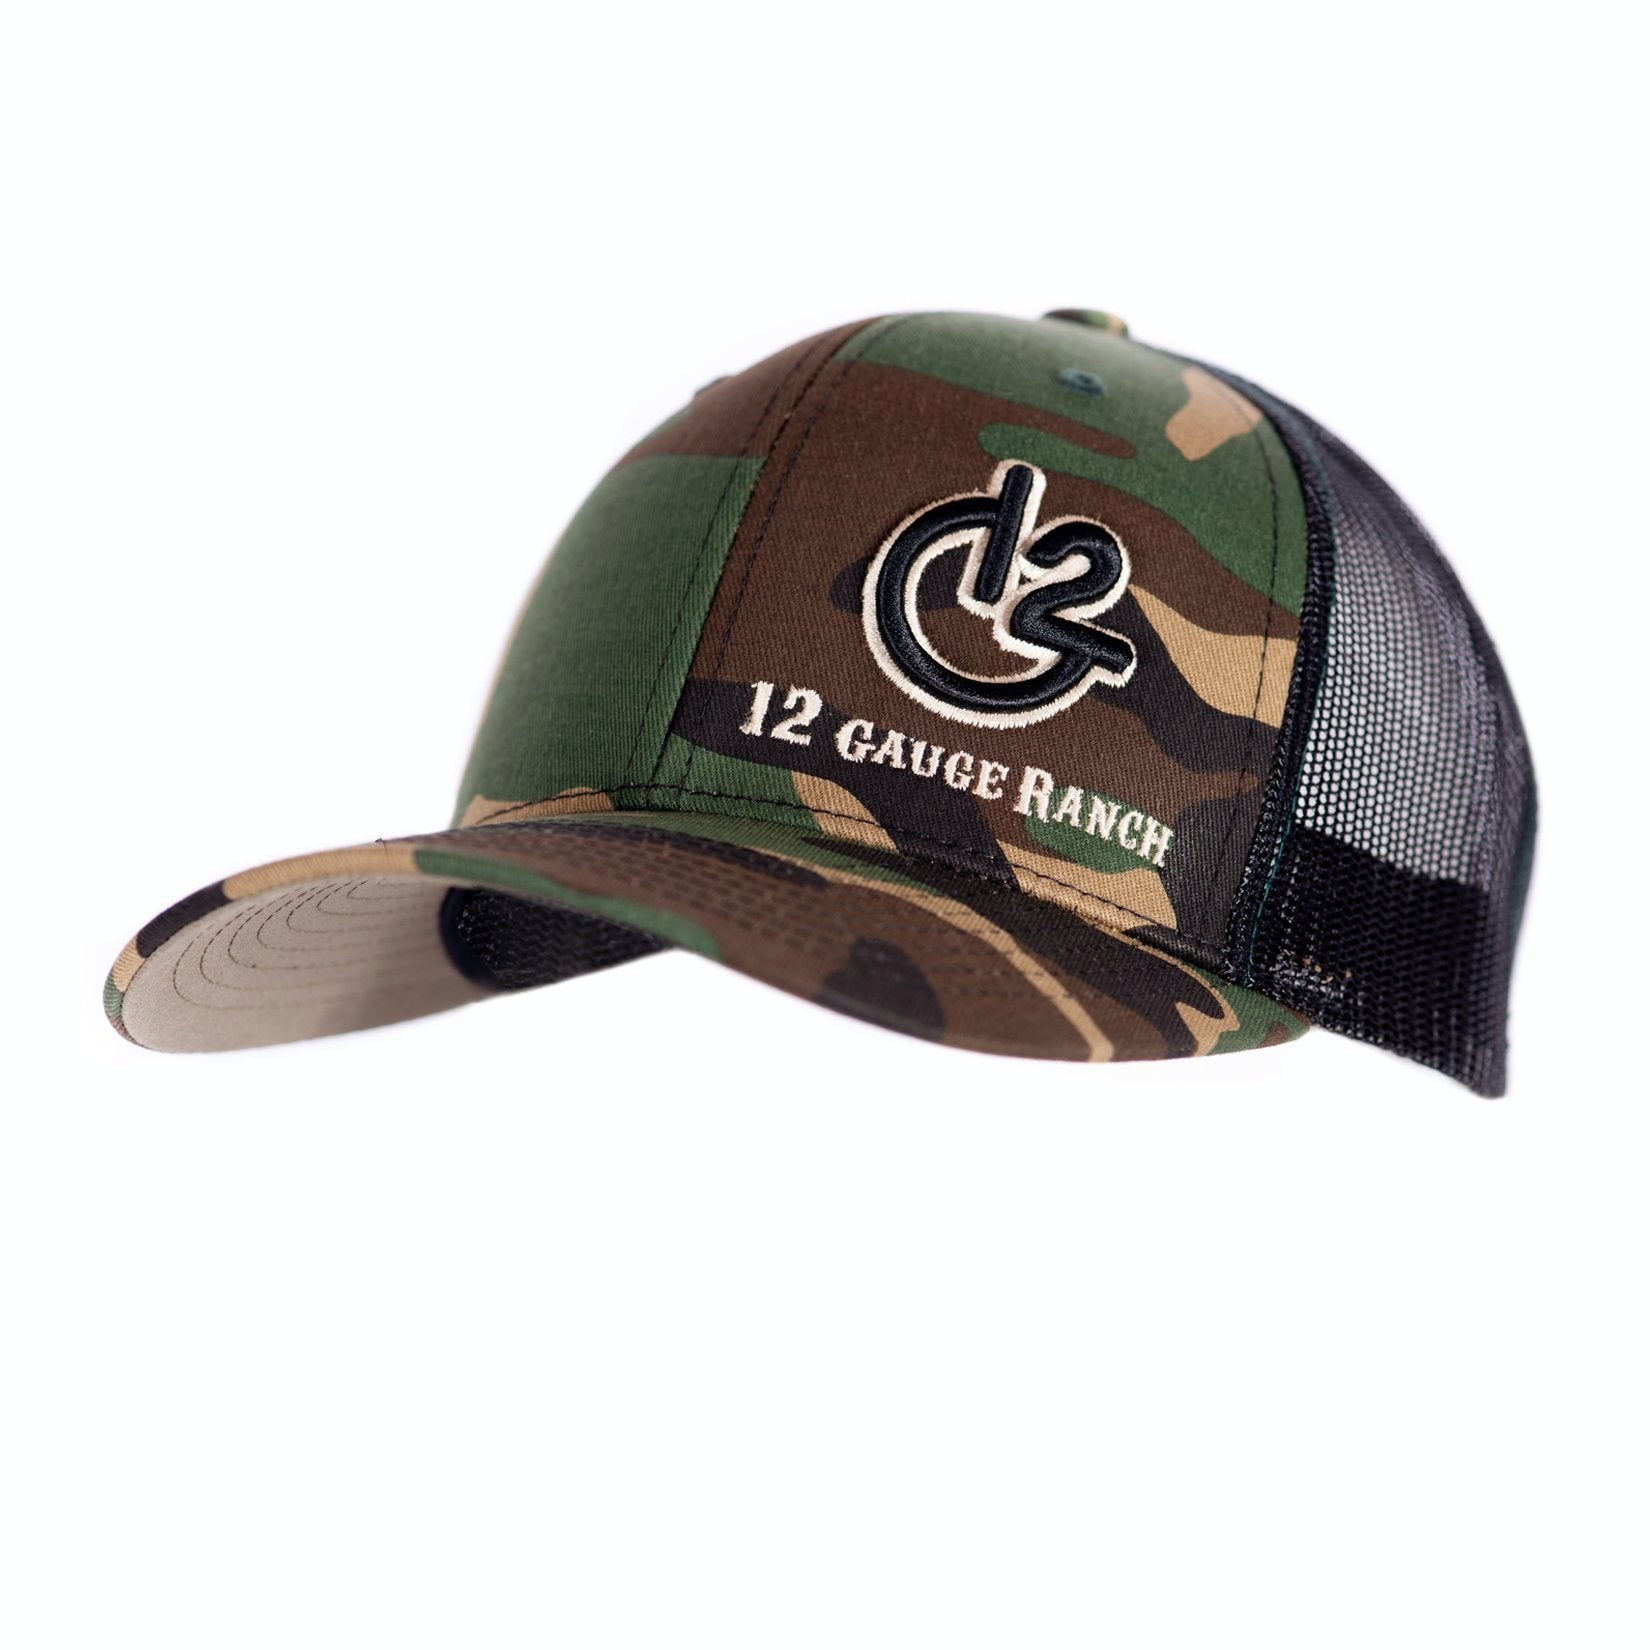 Camo and Black 12 Gauge Trucker Baseball Hat, Hats, 12 Gauge Ranch, 12 Gauge Ranch Ranch  12 Gauge Ranch